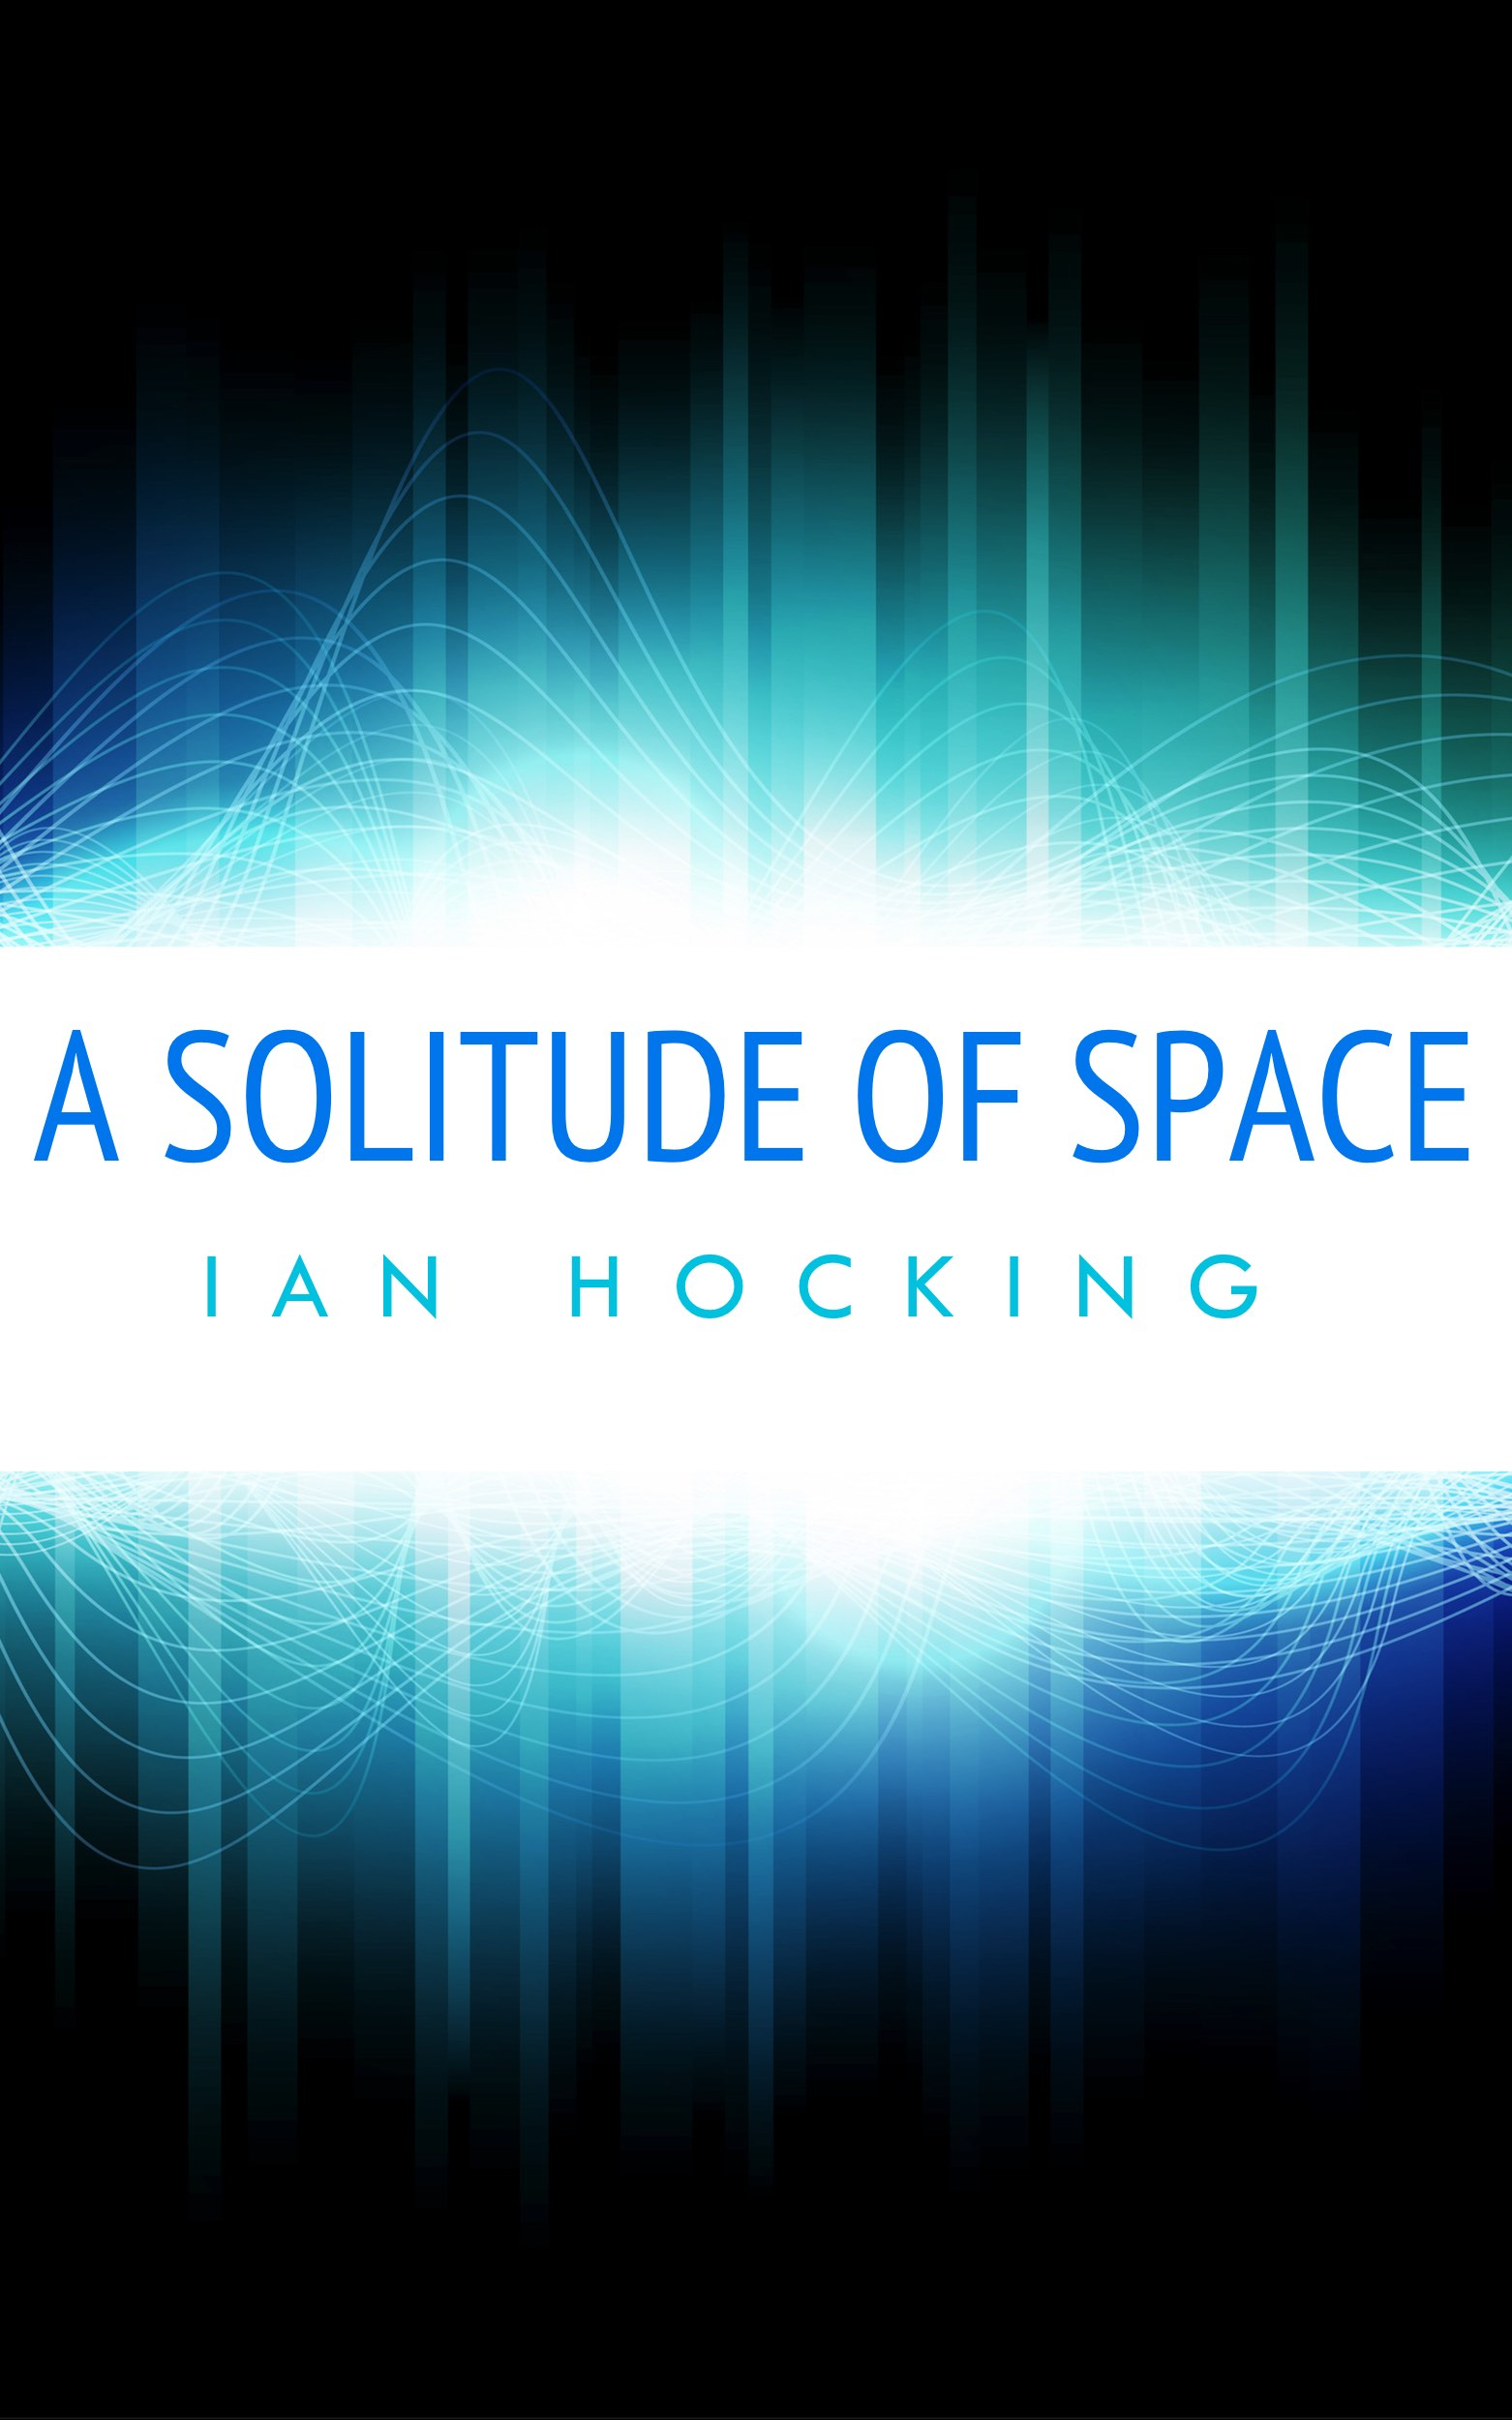 A Solitude of Space - Science Fiction Short